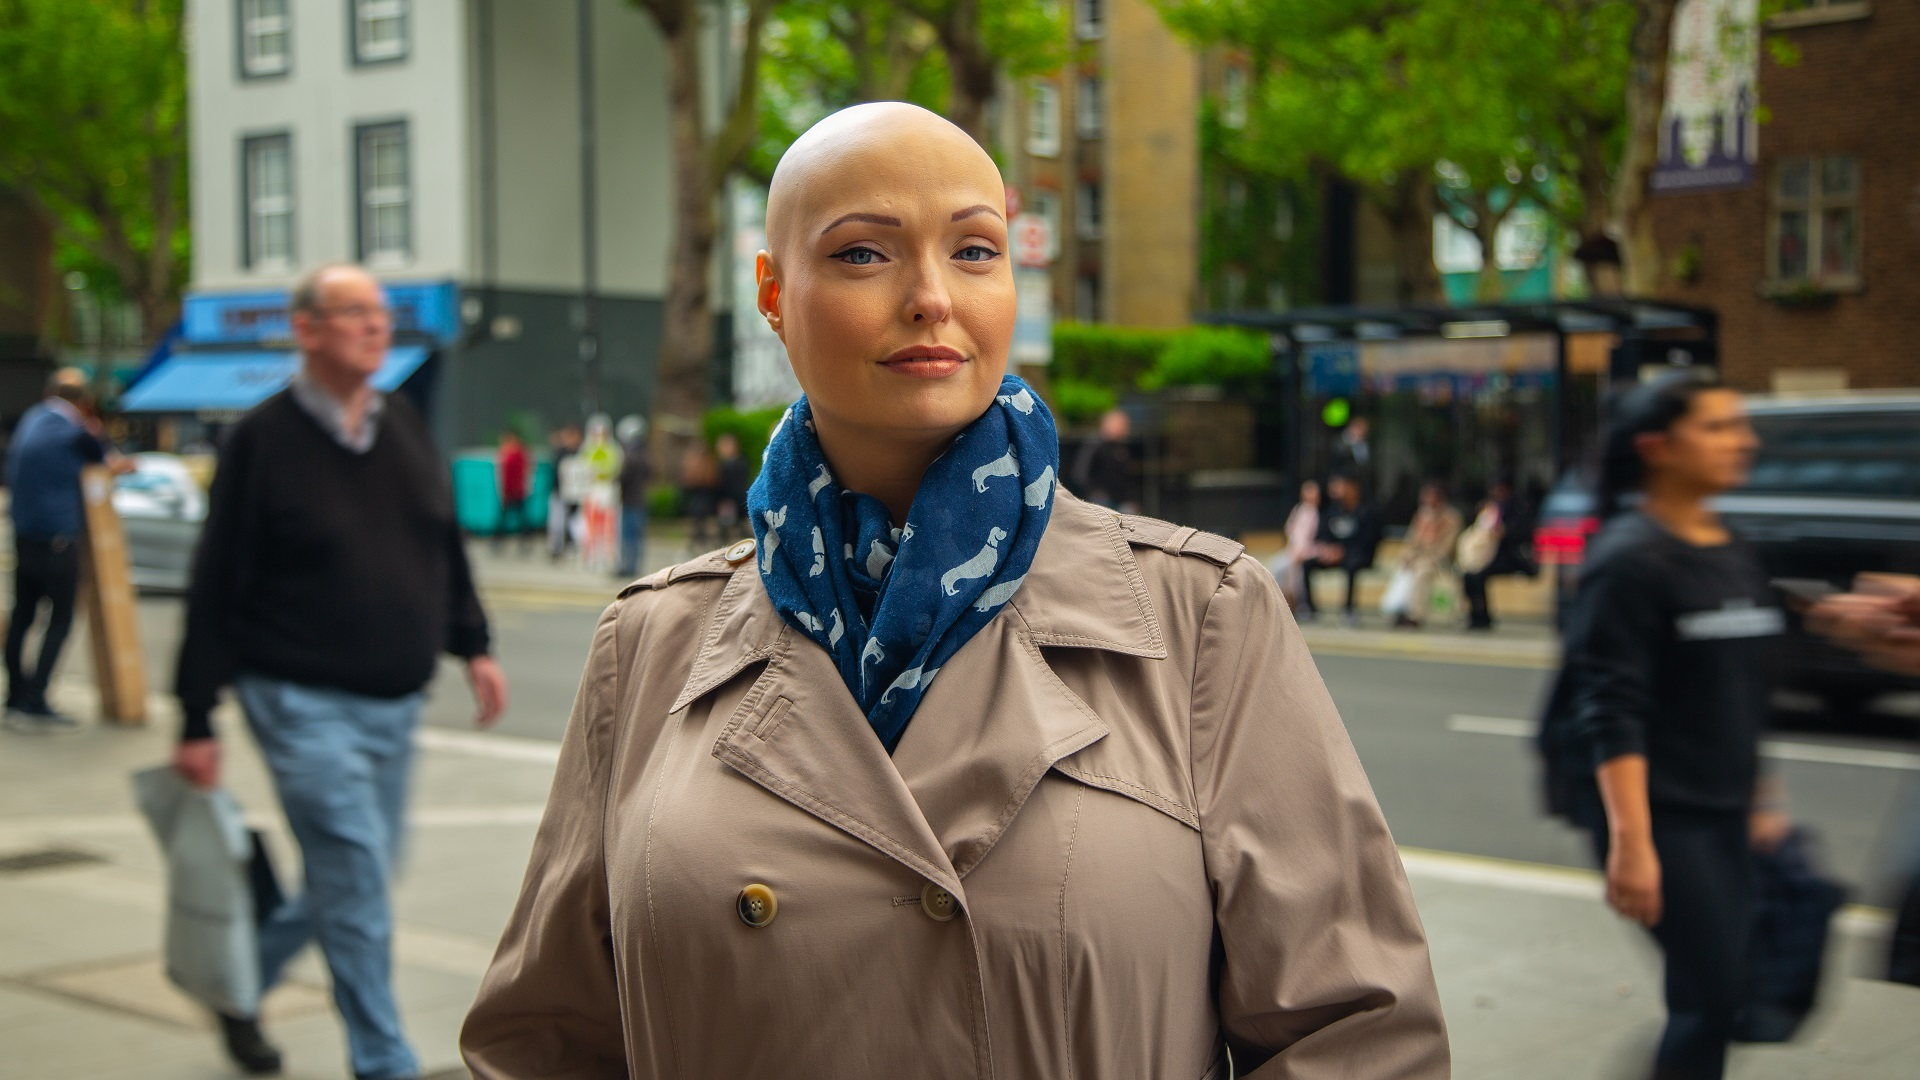 Brenda, who has alopecia, stands in a busy street wearing a beige coat and a blue scarf